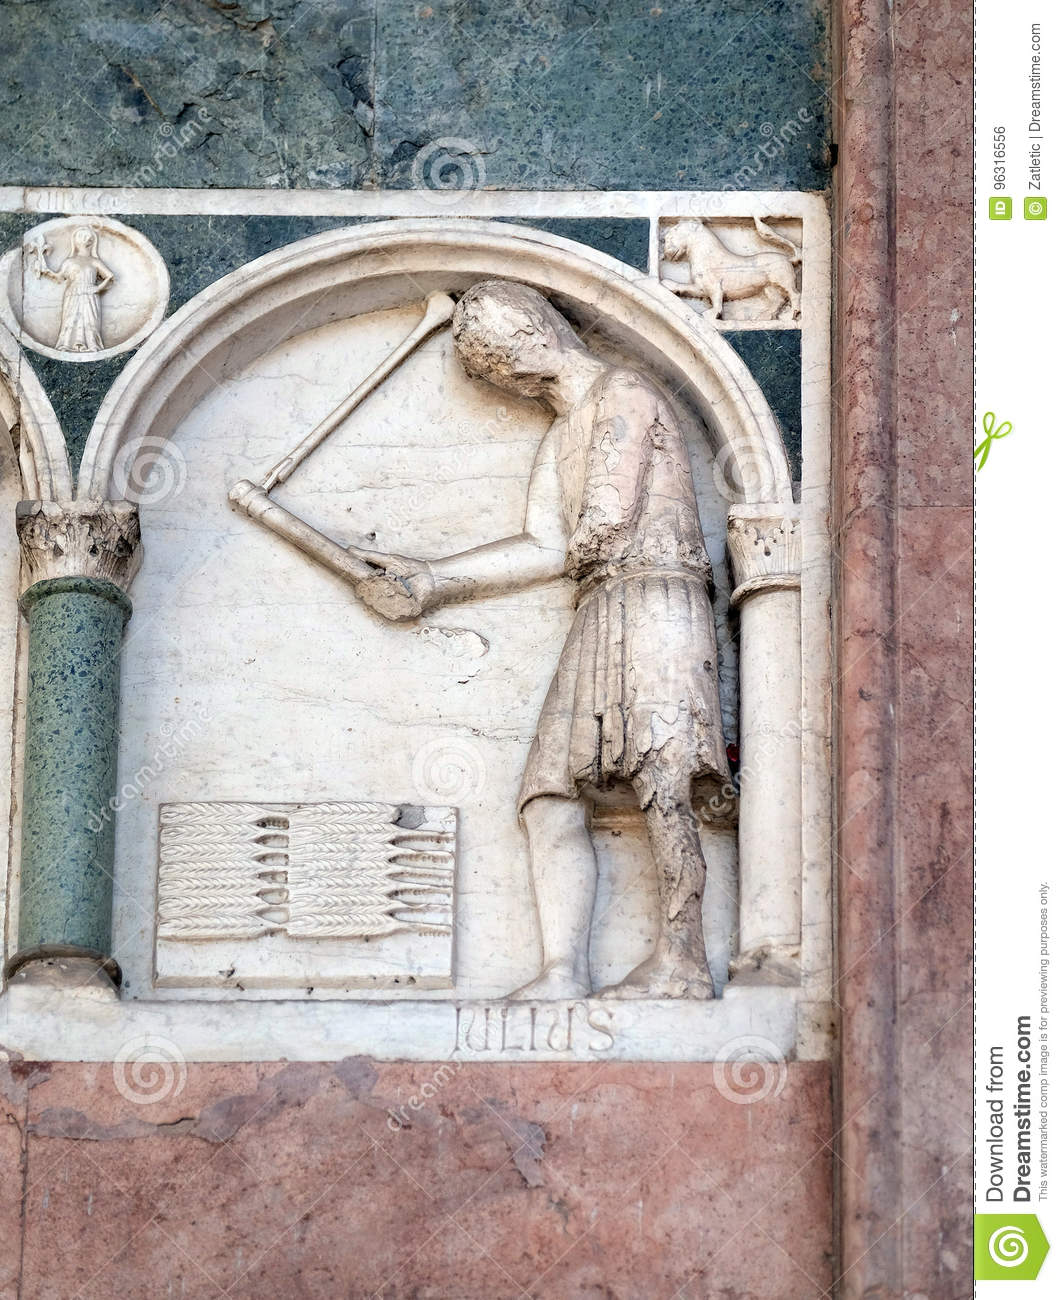 July,, detail of the bass-relief representing the Labor of the months of the year, Cathedral in Lucca, Italy